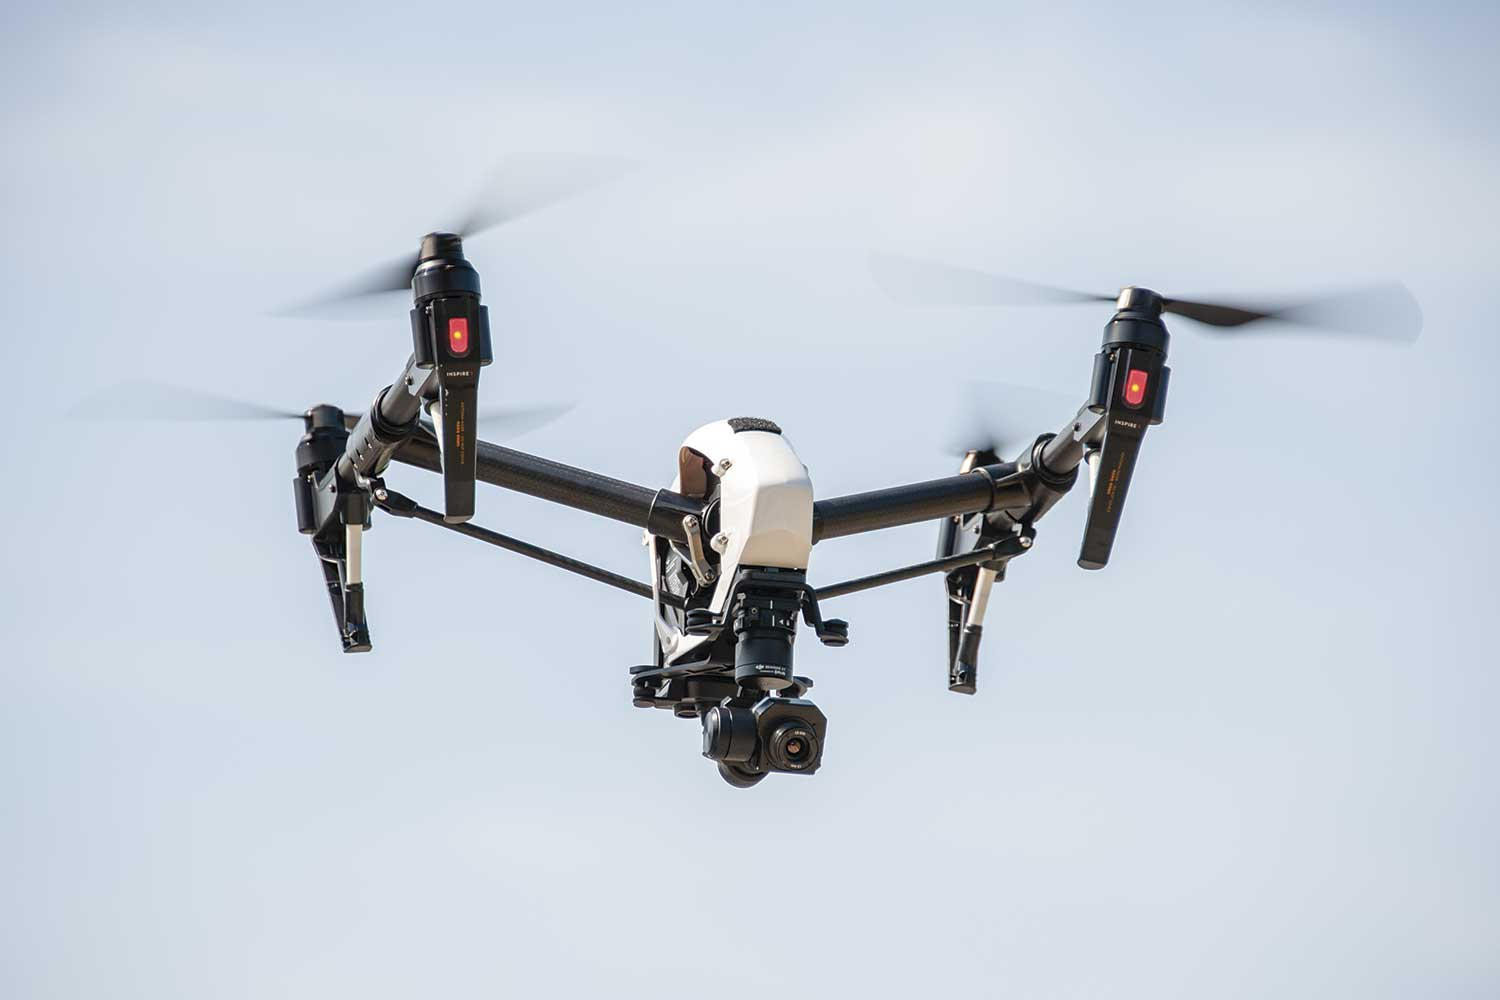 Georgetown Police Department purchased a drone about one year ago. Officers trained and assigned to the department's aviation unit have used the equipment in law enforcement operations as well as for community relations events. (Photo by Jim Robertson)